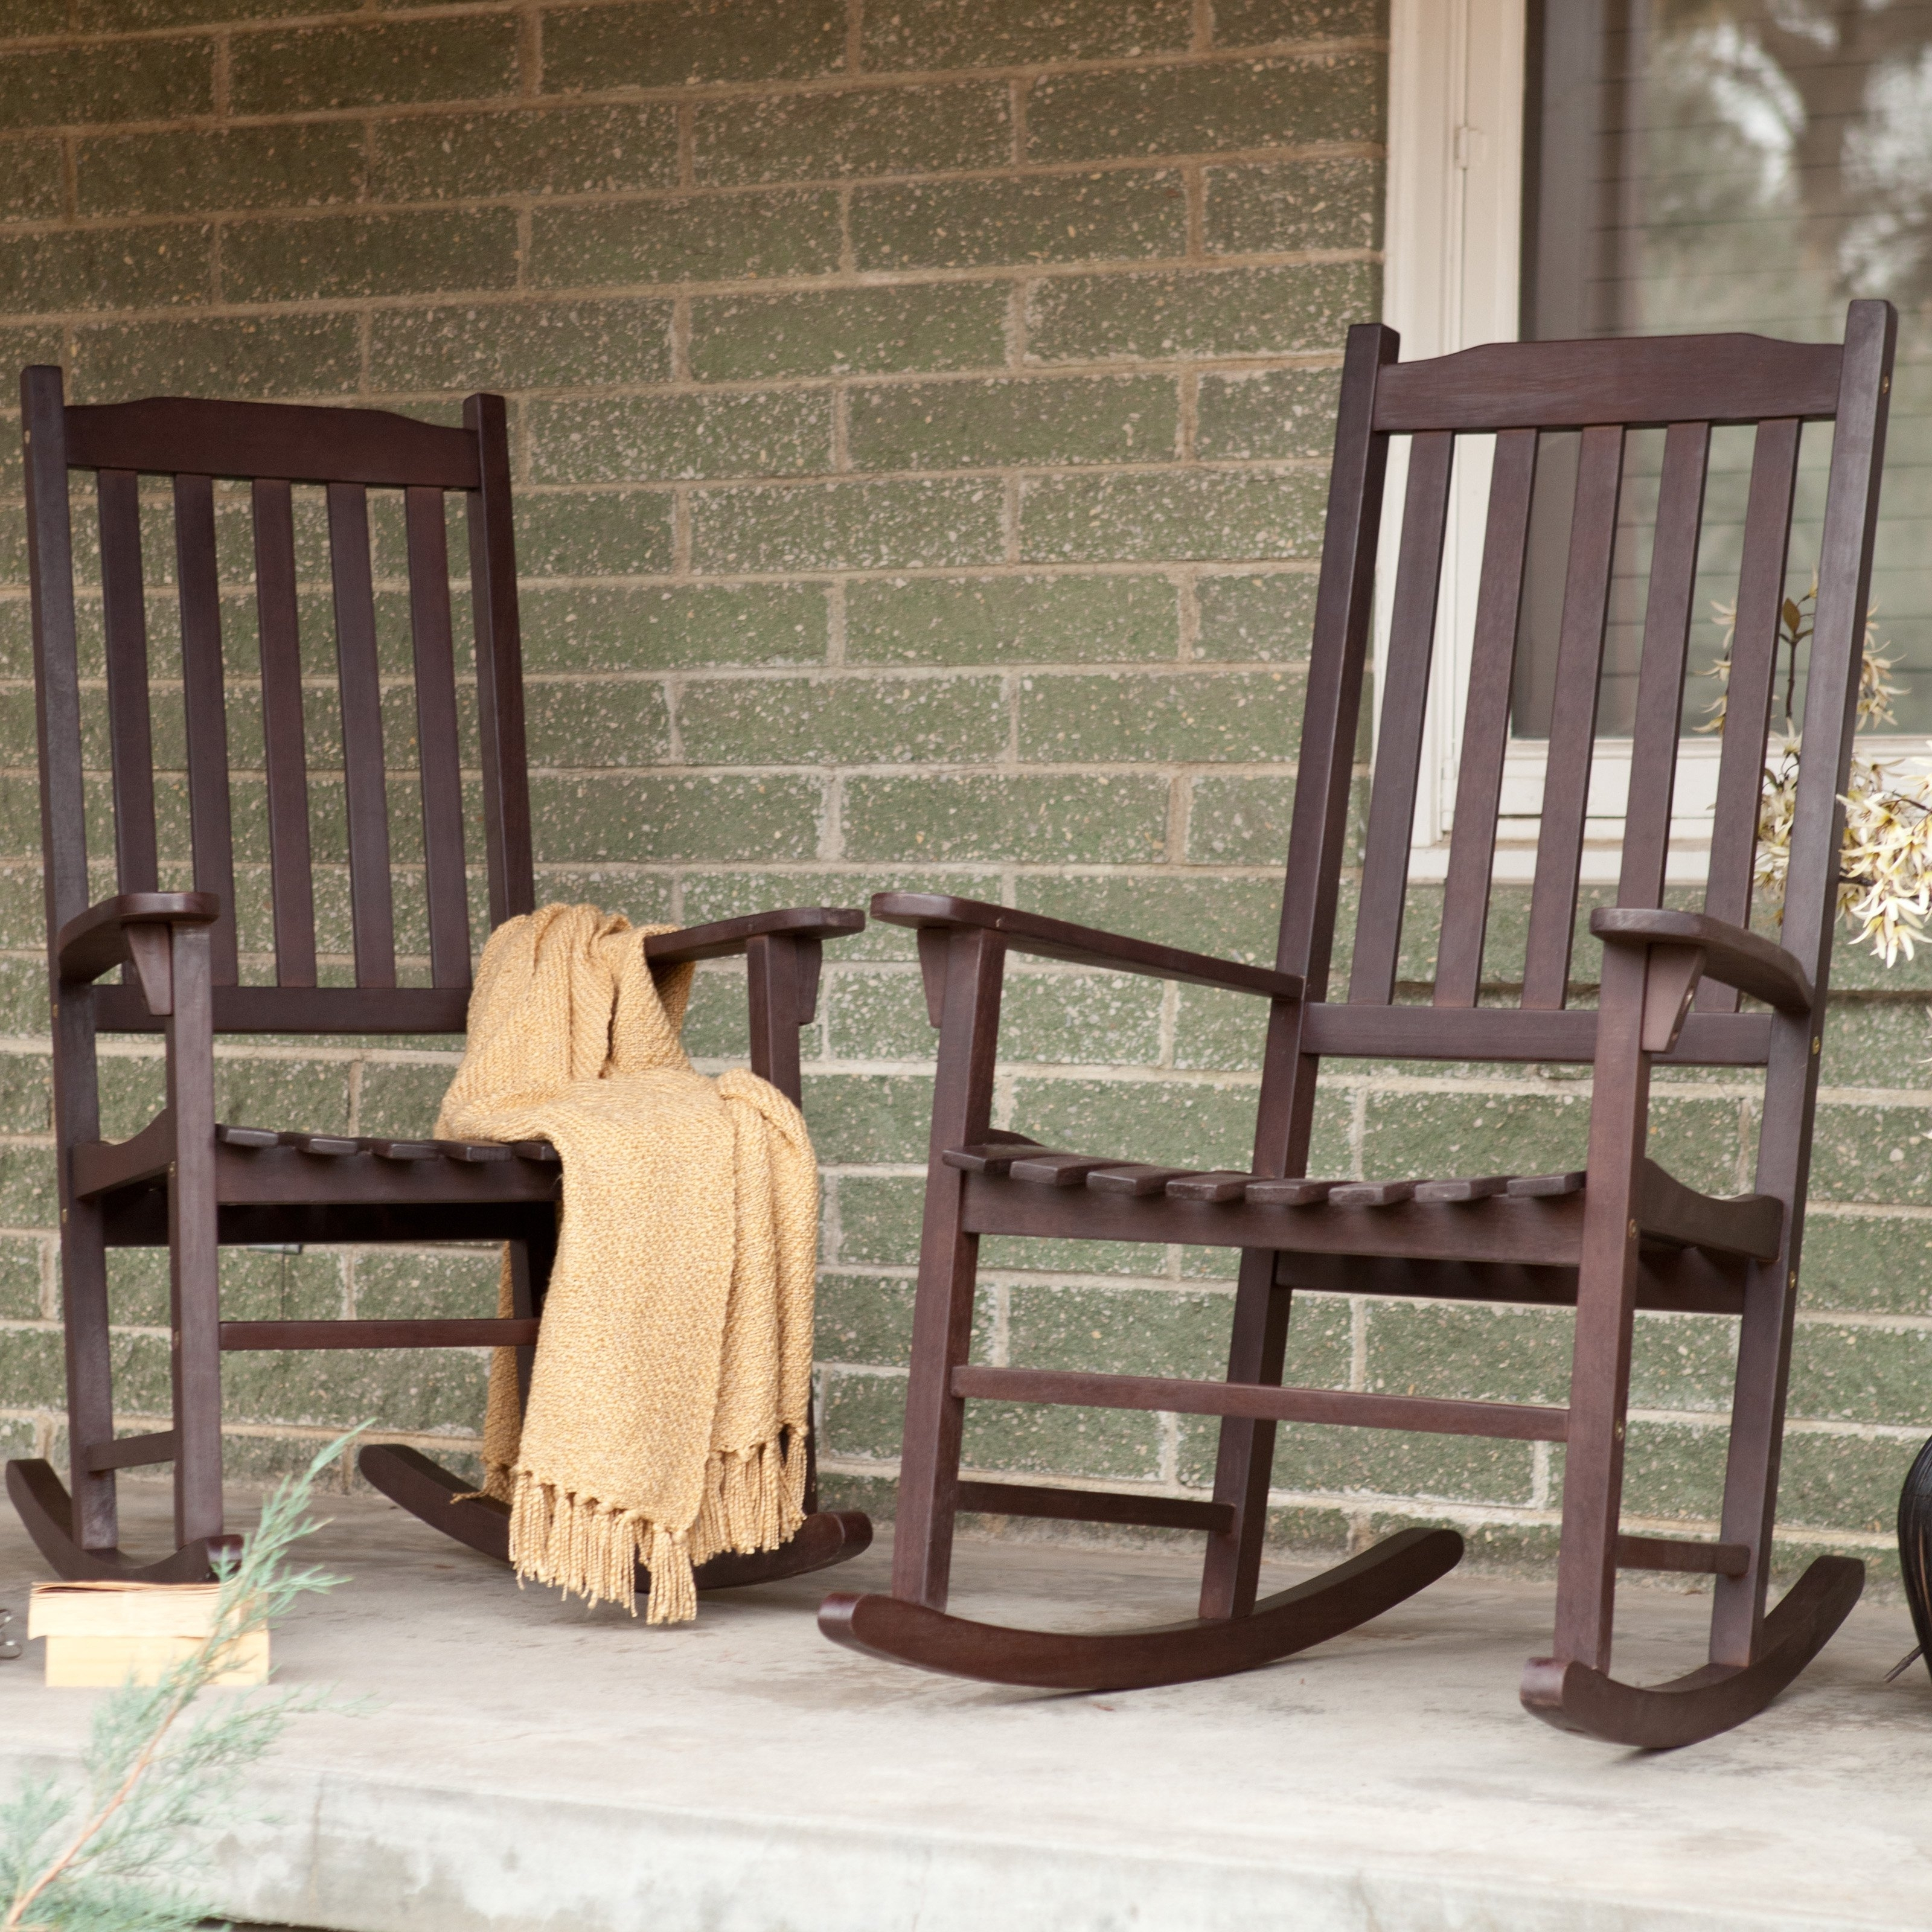 Chair Black Indoor Rocking Chair Black Patio Rocking Chairs Black Intended For Wooden Patio Rocking Chairs (#3 of 15)